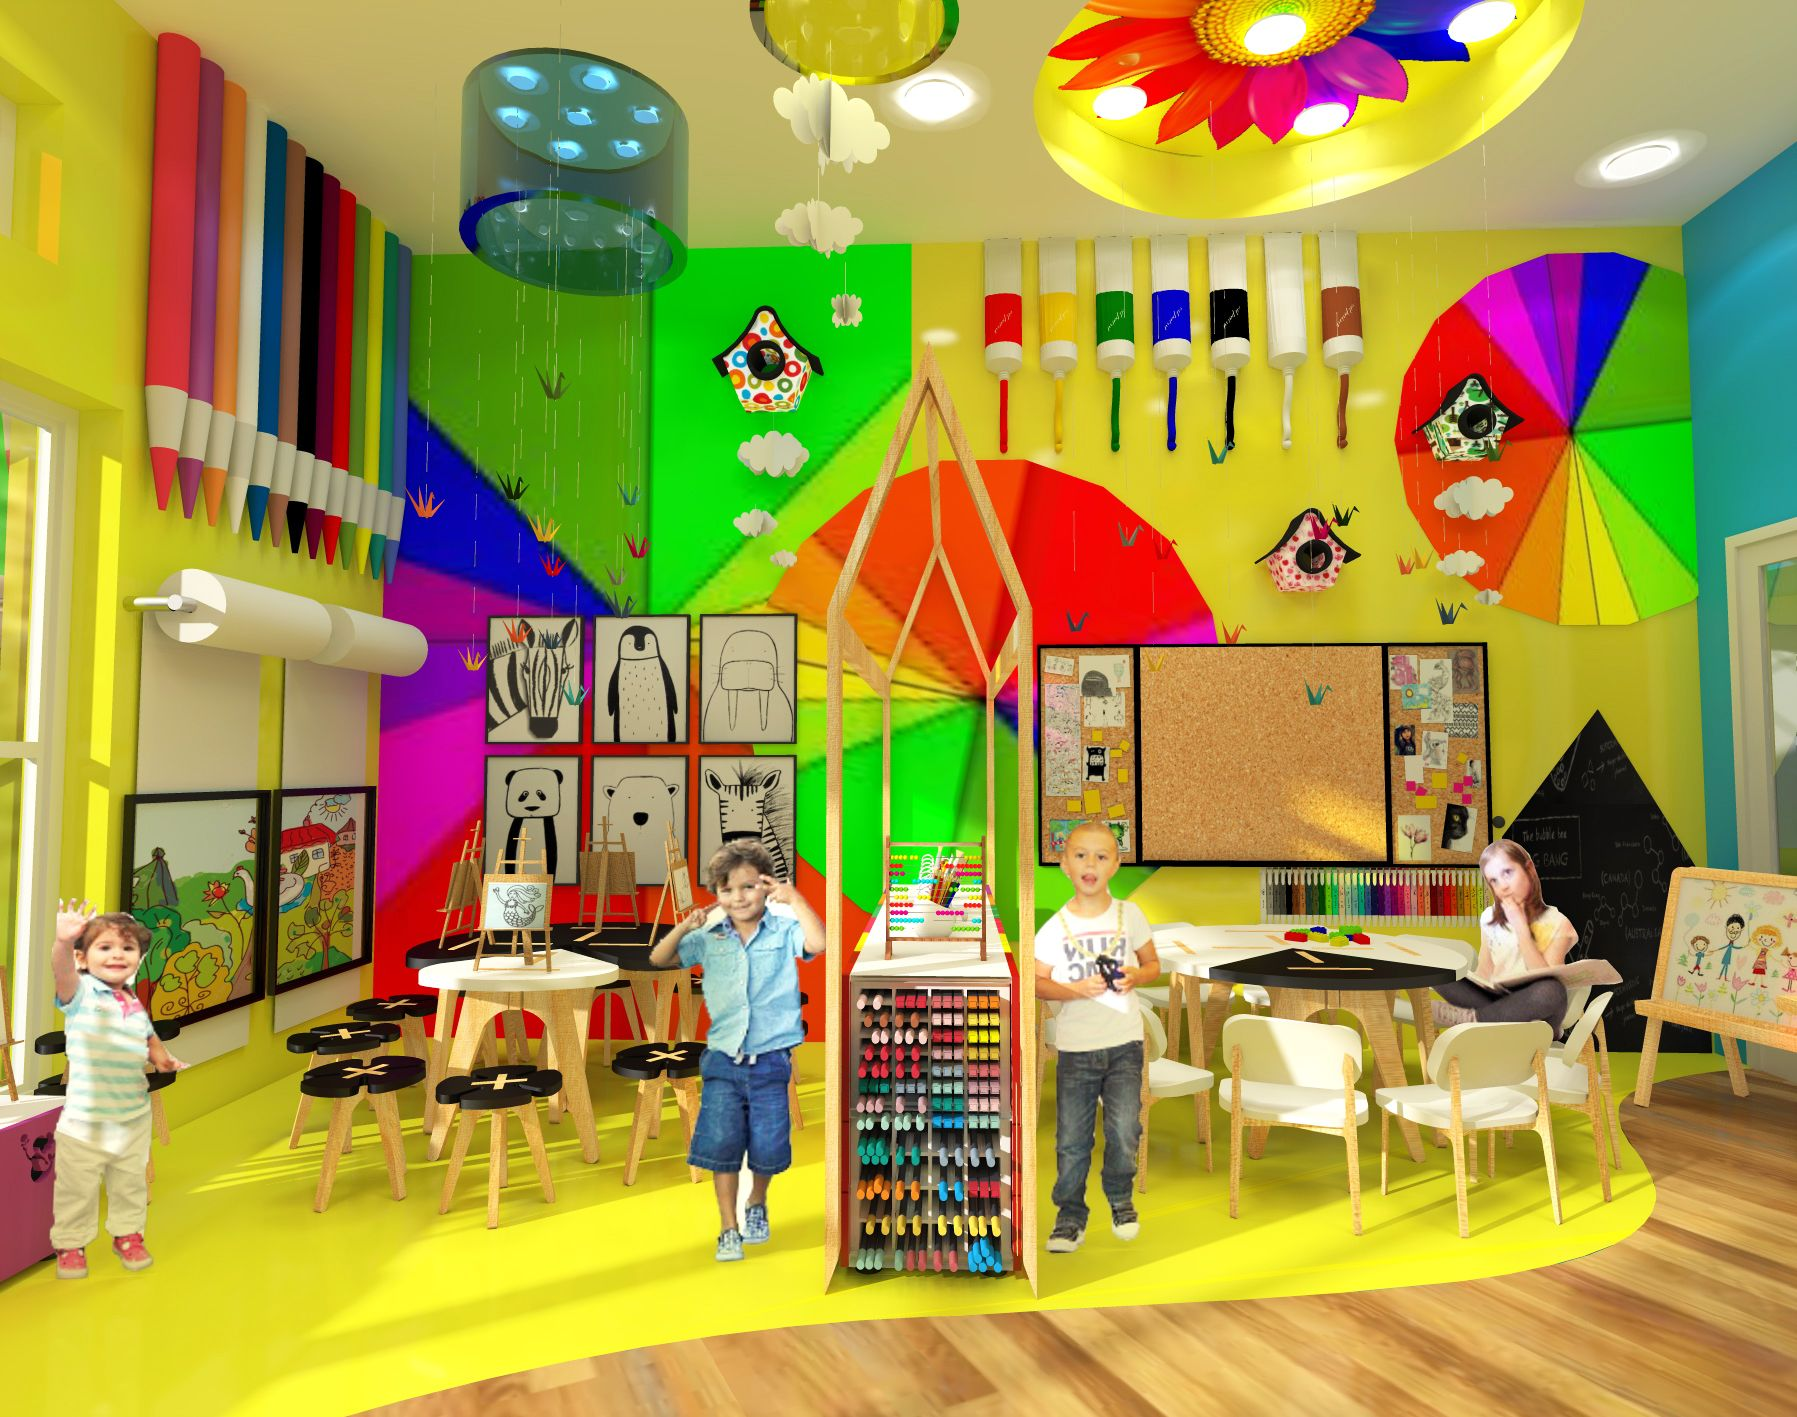 Kinder Garden: Kindergarten Playroom Design